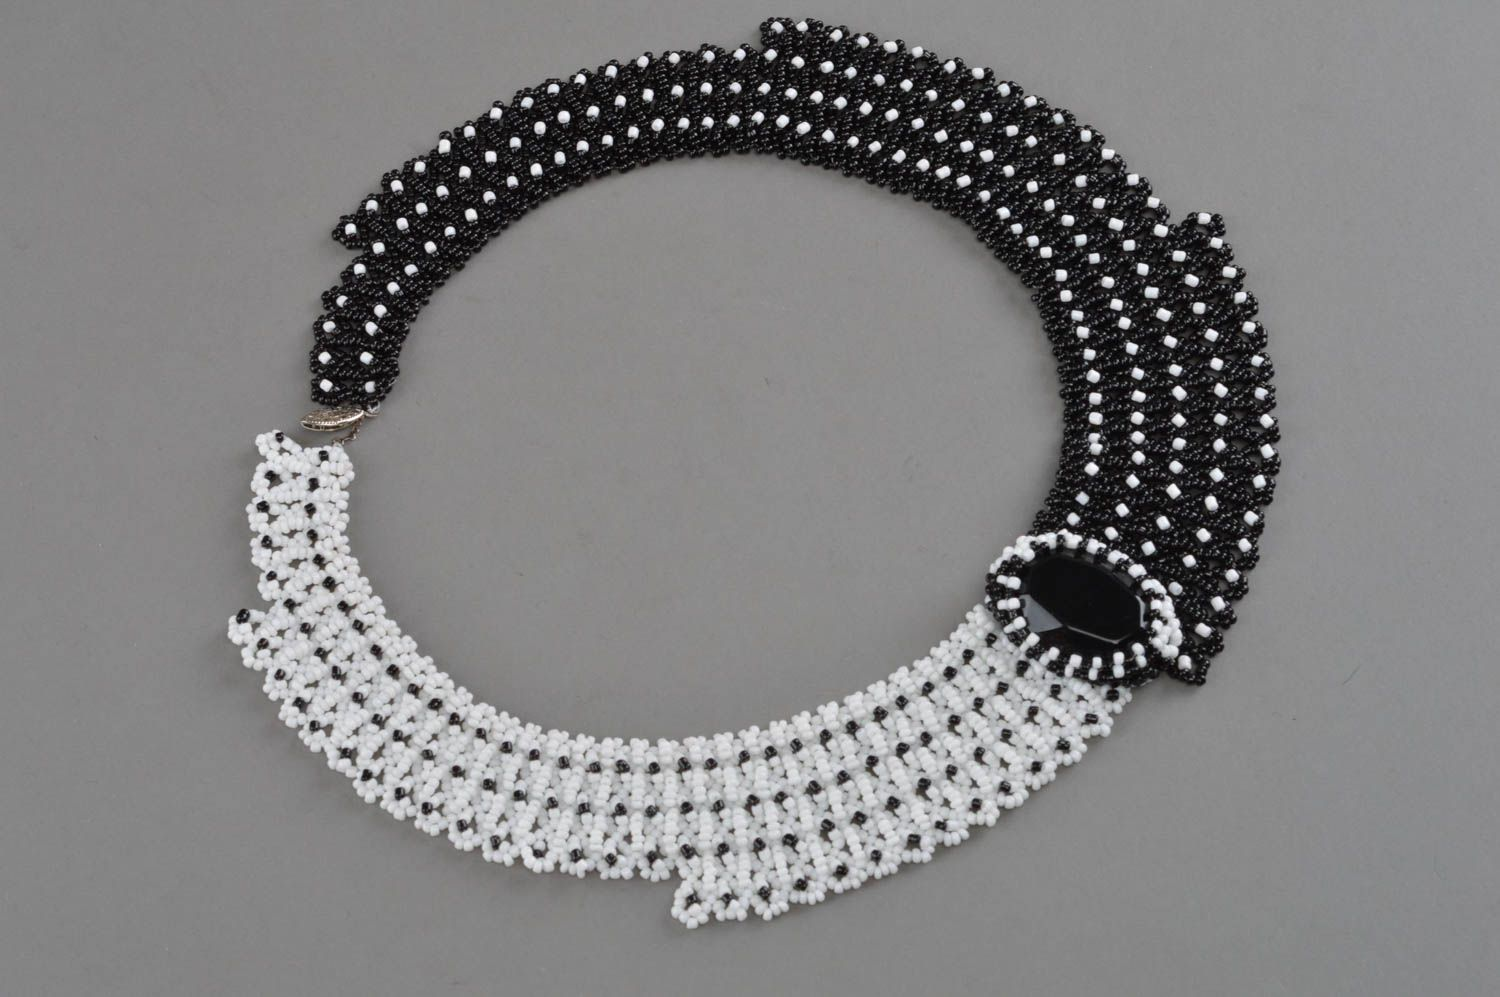 Black and white beaded necklace handmade accessory evening jewelry for women photo 3